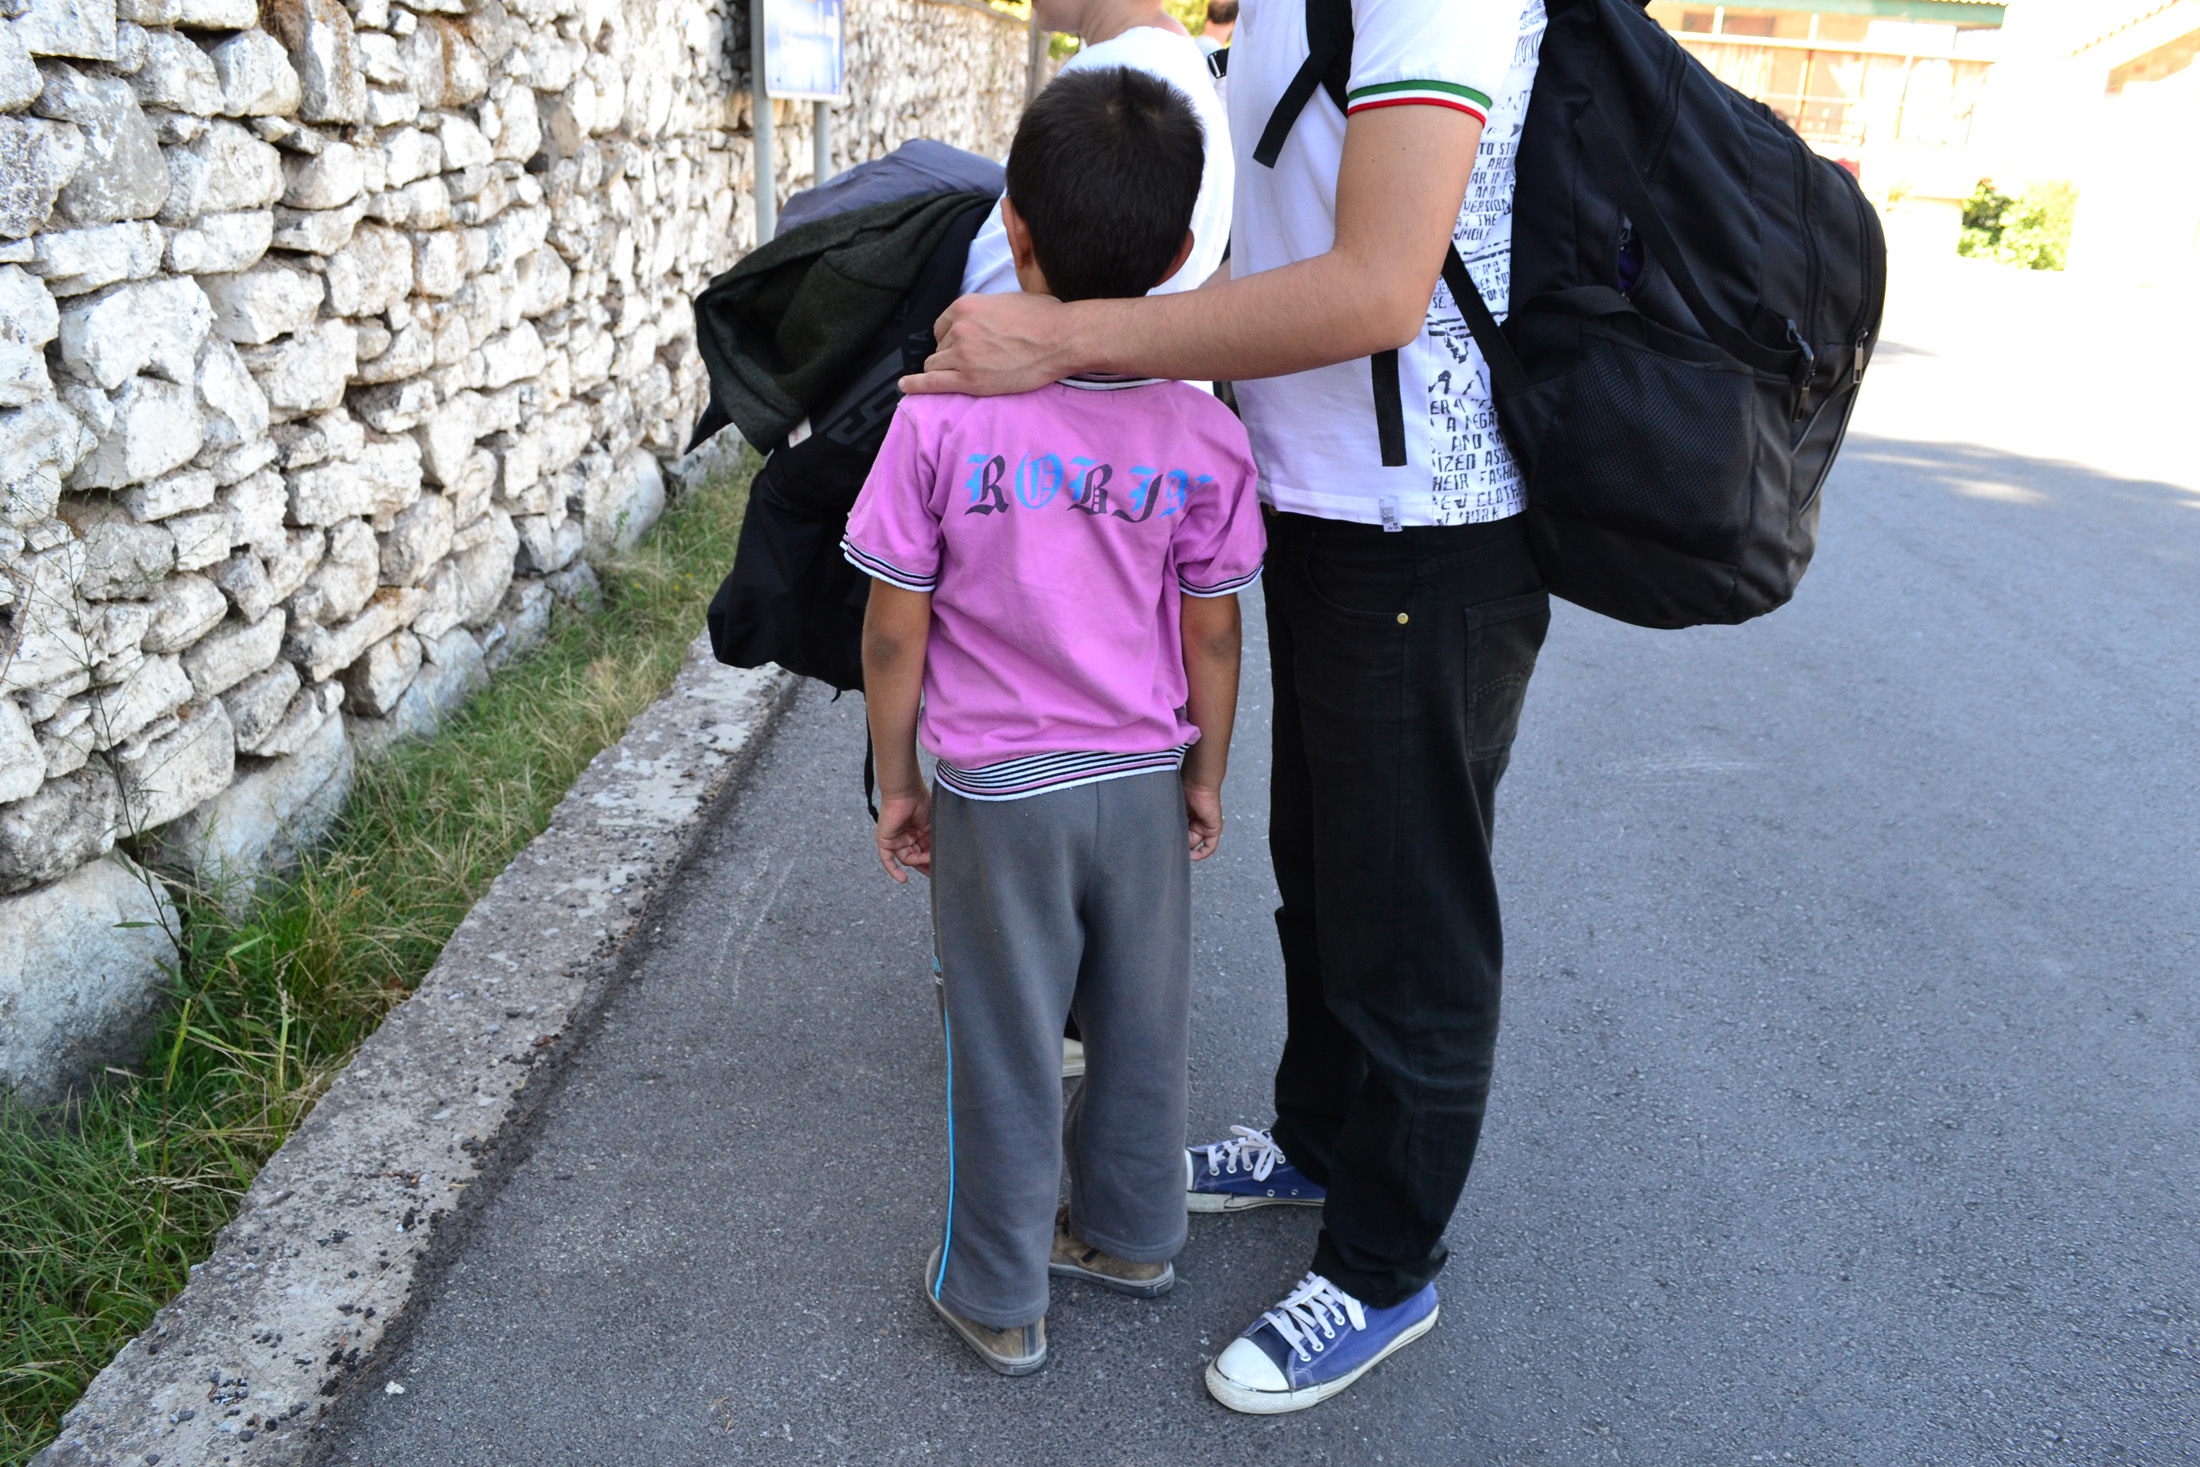 Emmad Saeed (not his real name) and his young nephew are among 23 Syrian refugees who recently arrived on the Greek island of Lesvos in a bid to reach Europe and safety